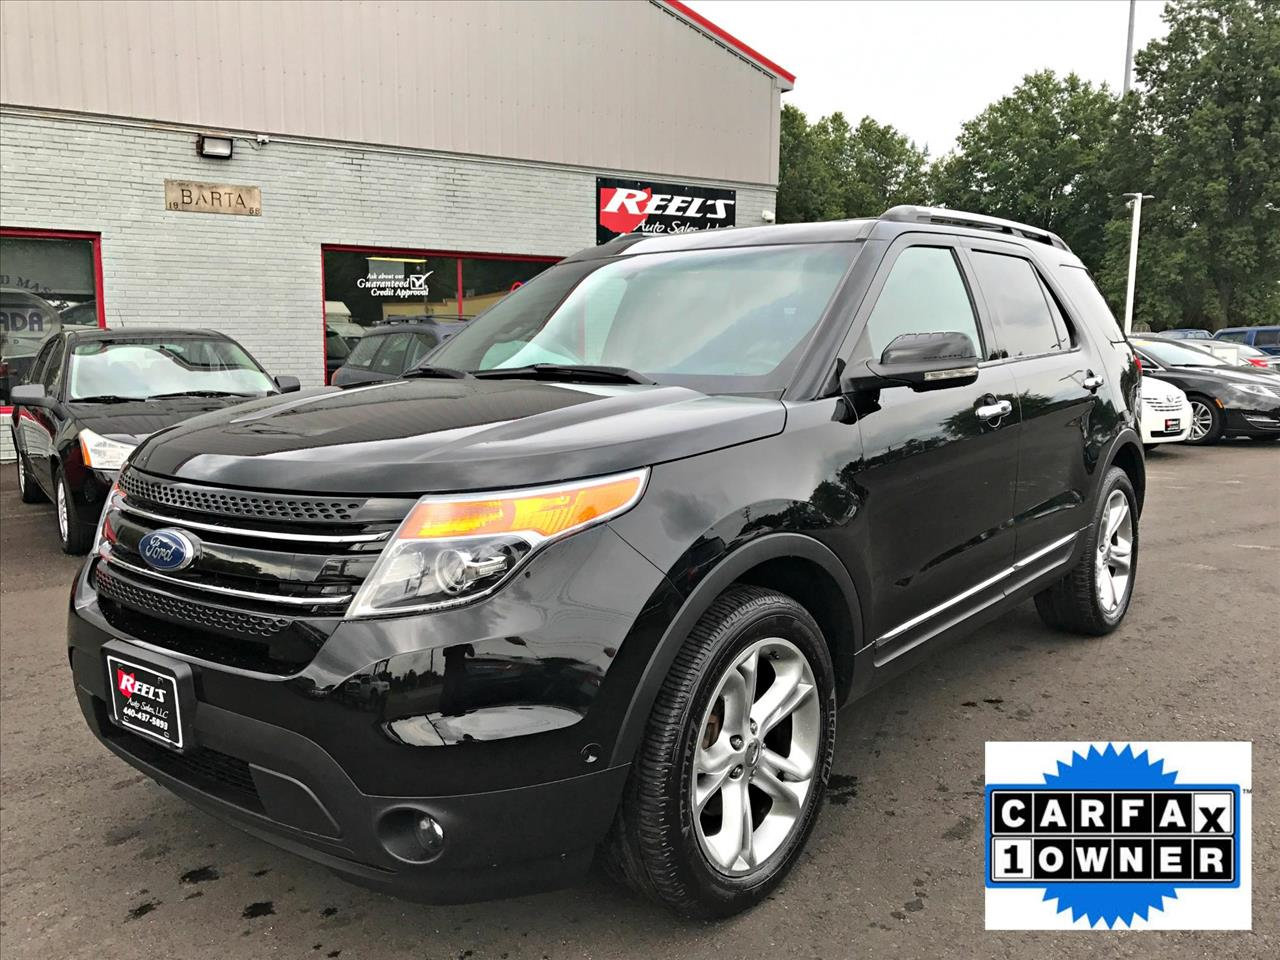 2011 Ford Explorer AWD Limited 4dr SUV - Orwell OH